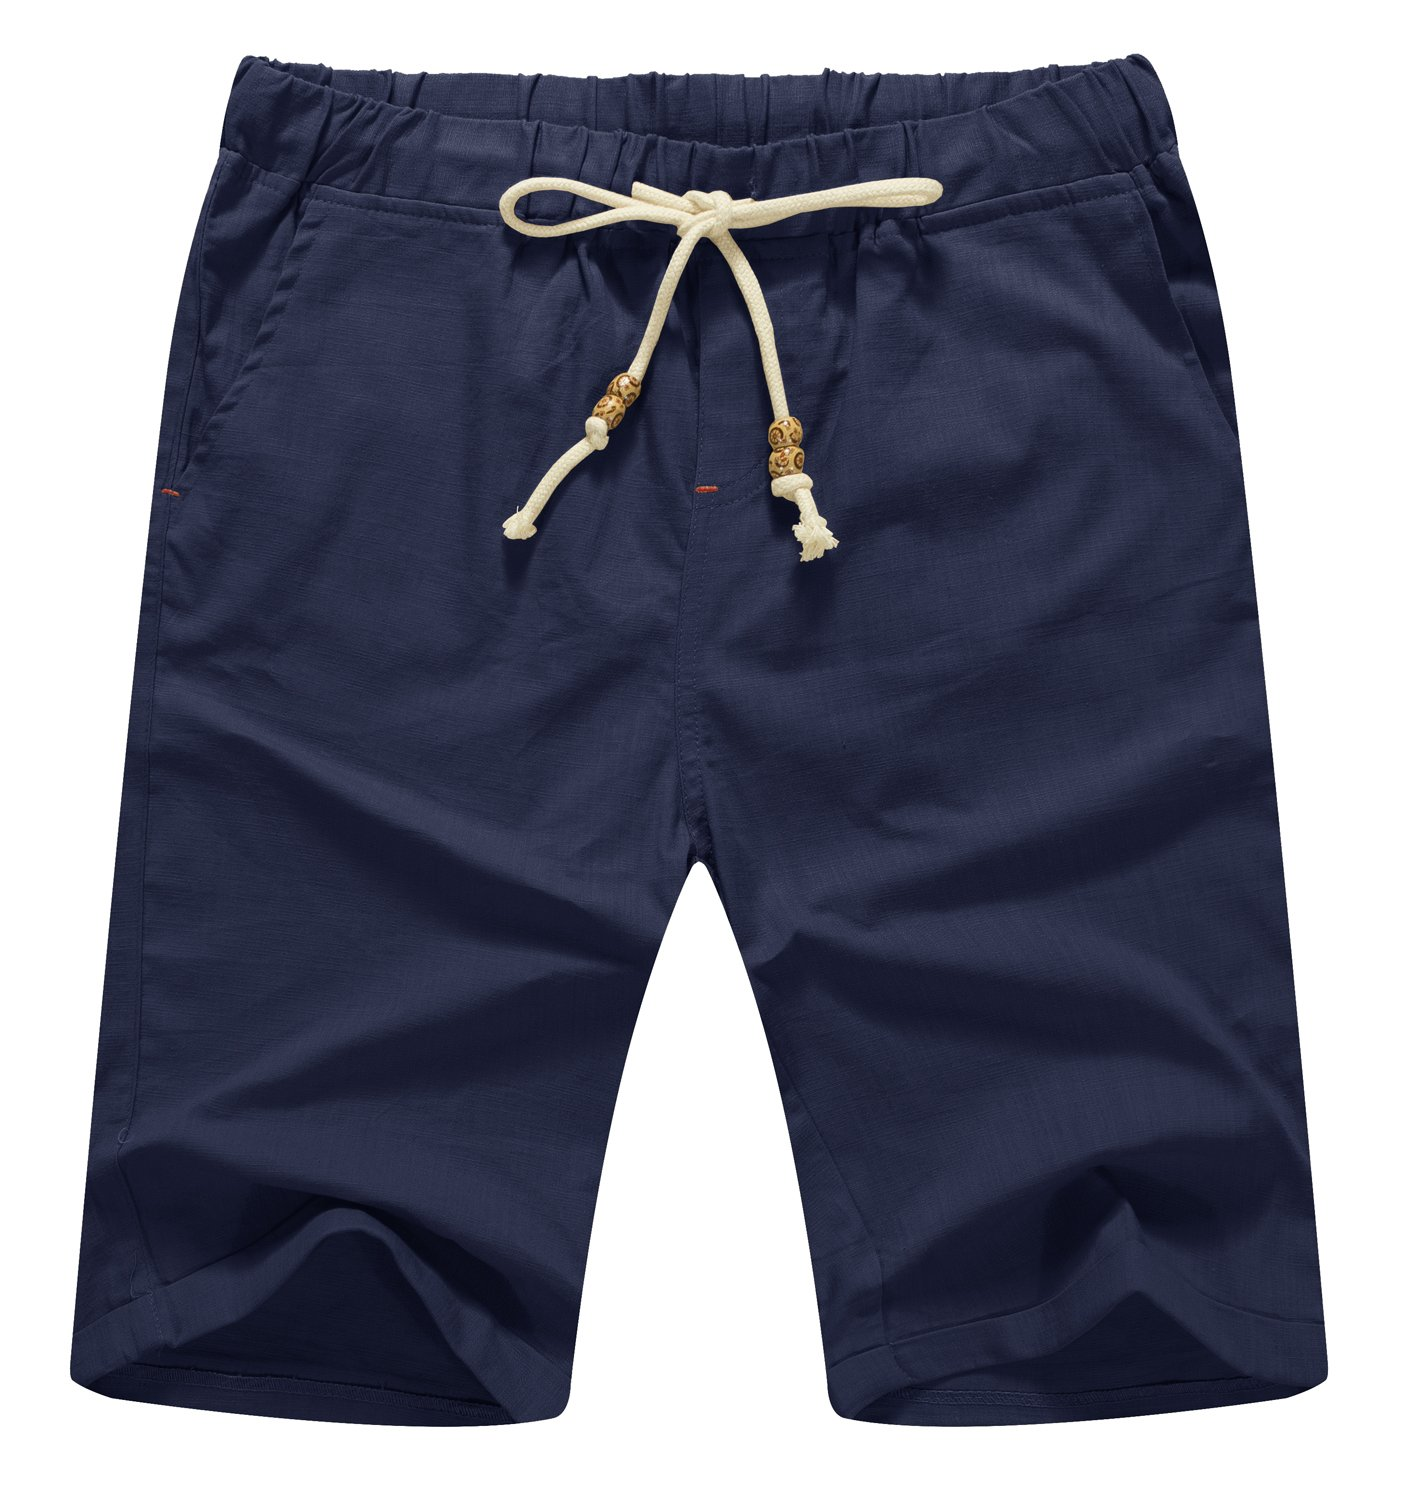 Mr.Zhang Men's Linen Casual Classic Fit Short Summer Beach Shorts Navy Blue-US M